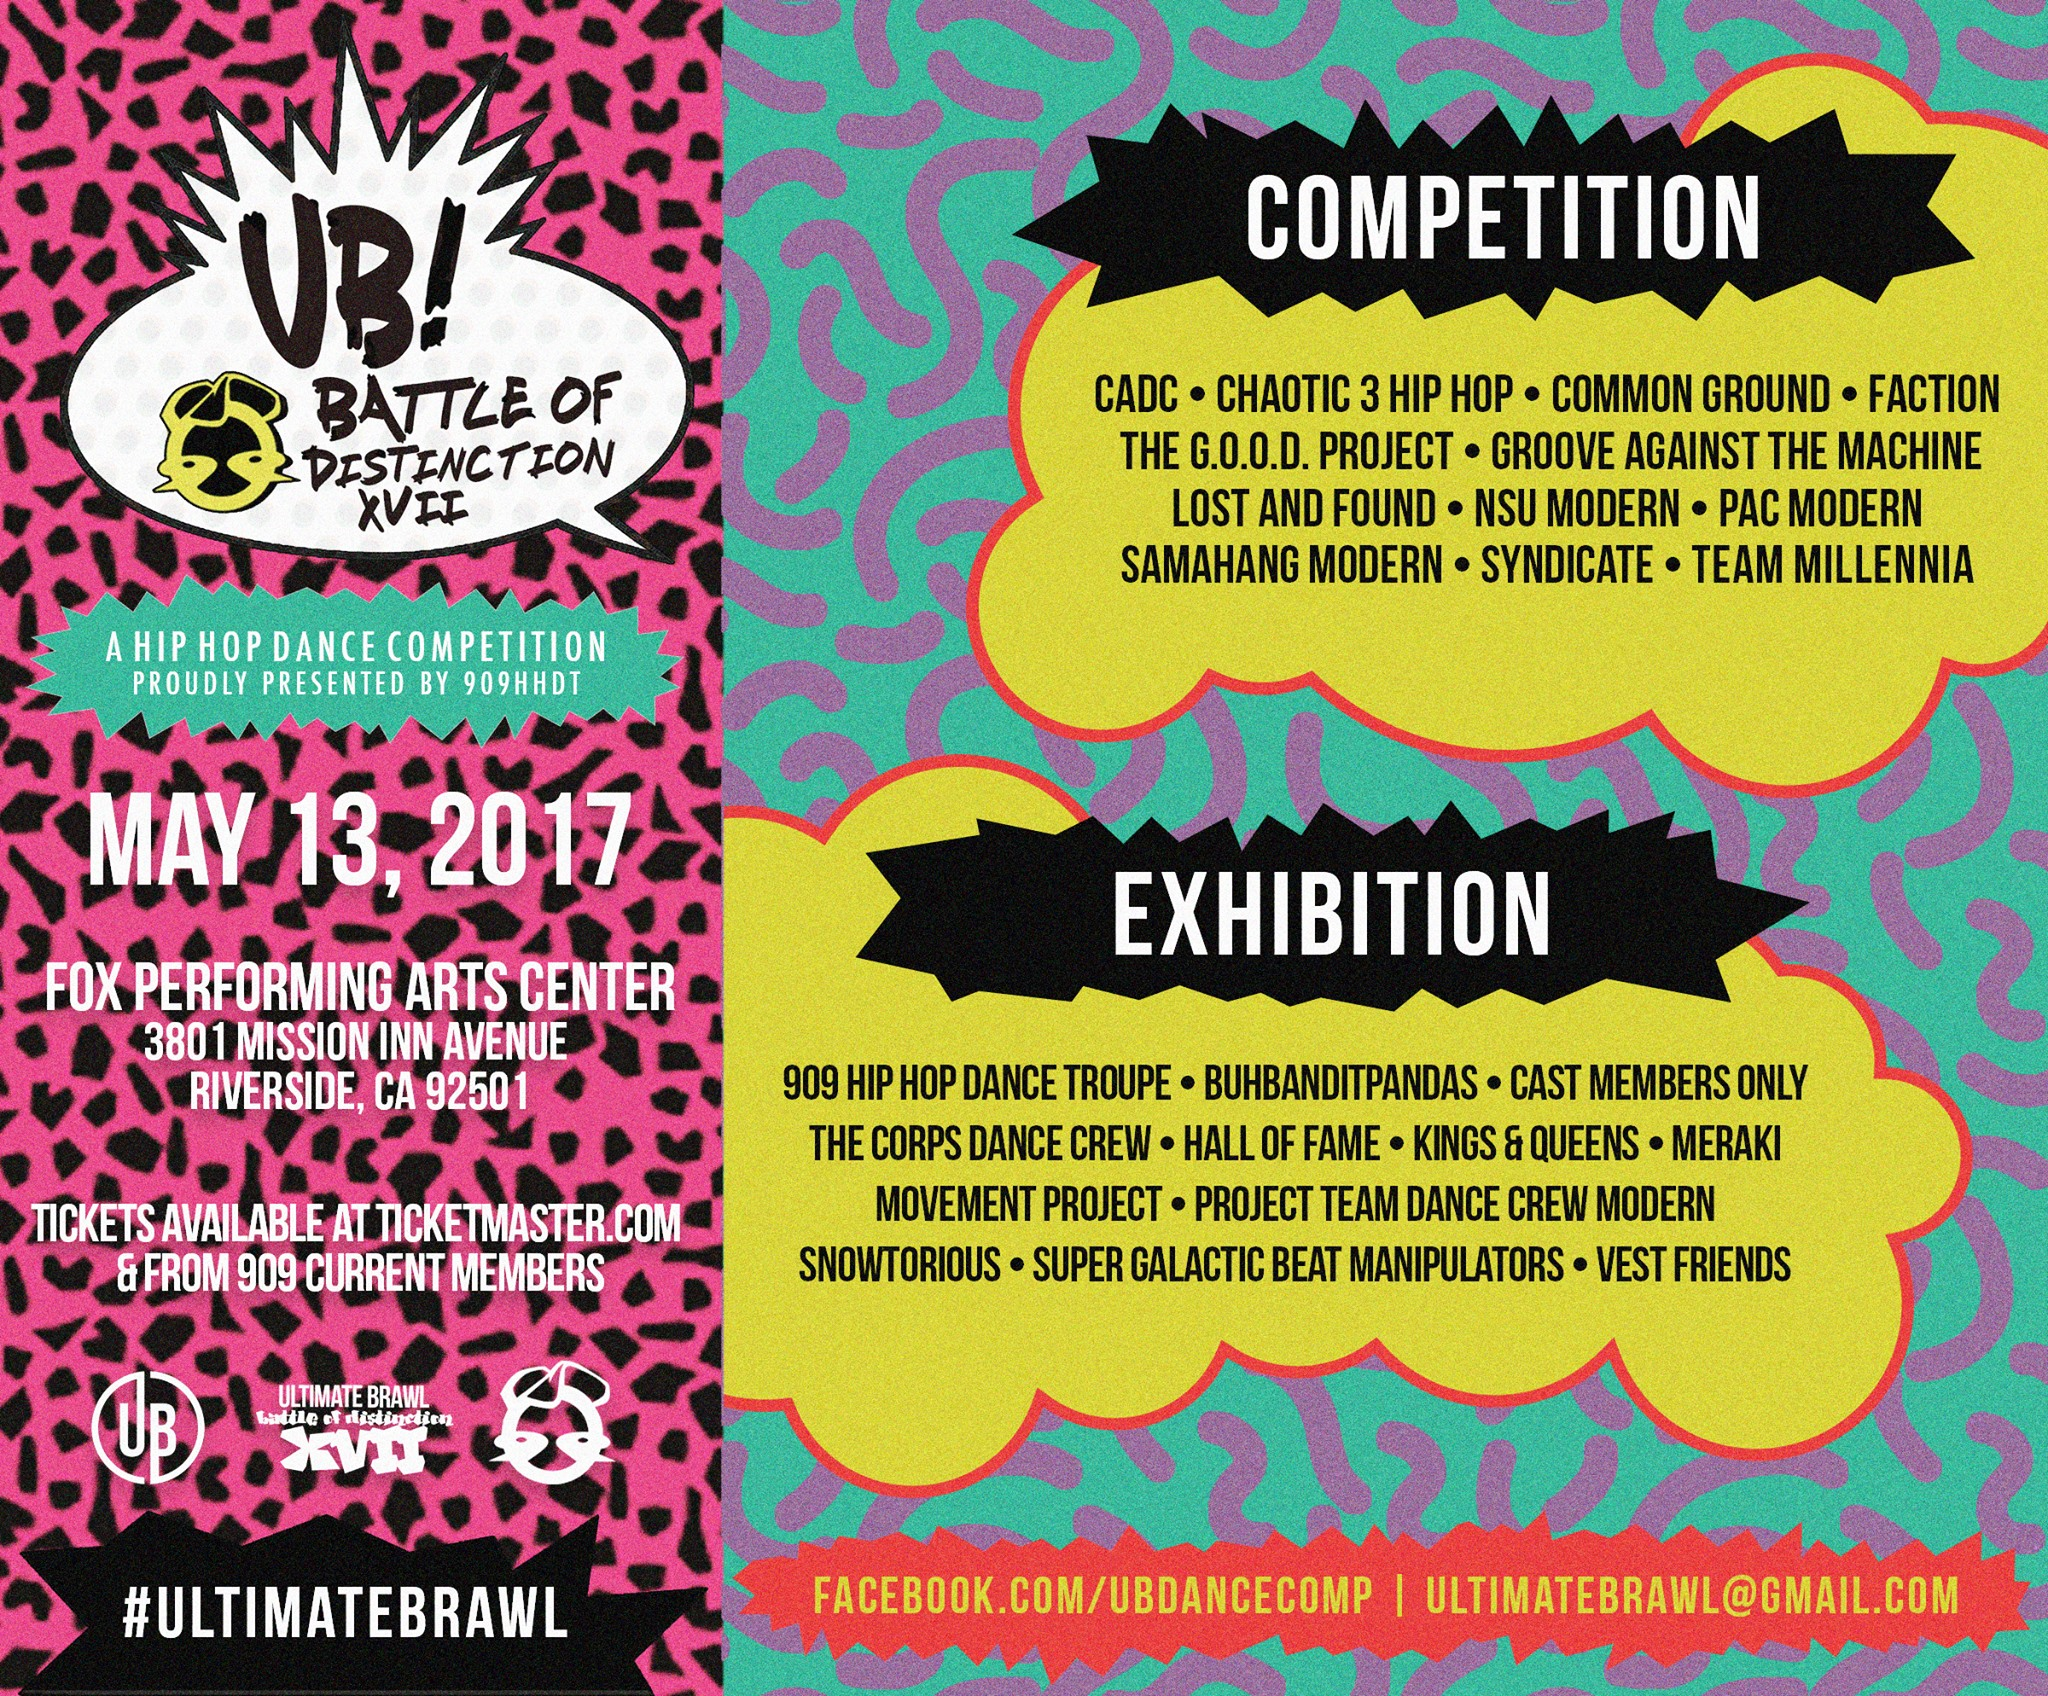 Catch The Corps at Ultimate Brawl Battle of Distinction XVII performing in the Exhibition category. For more information check the flyer below or visit the facebook event!